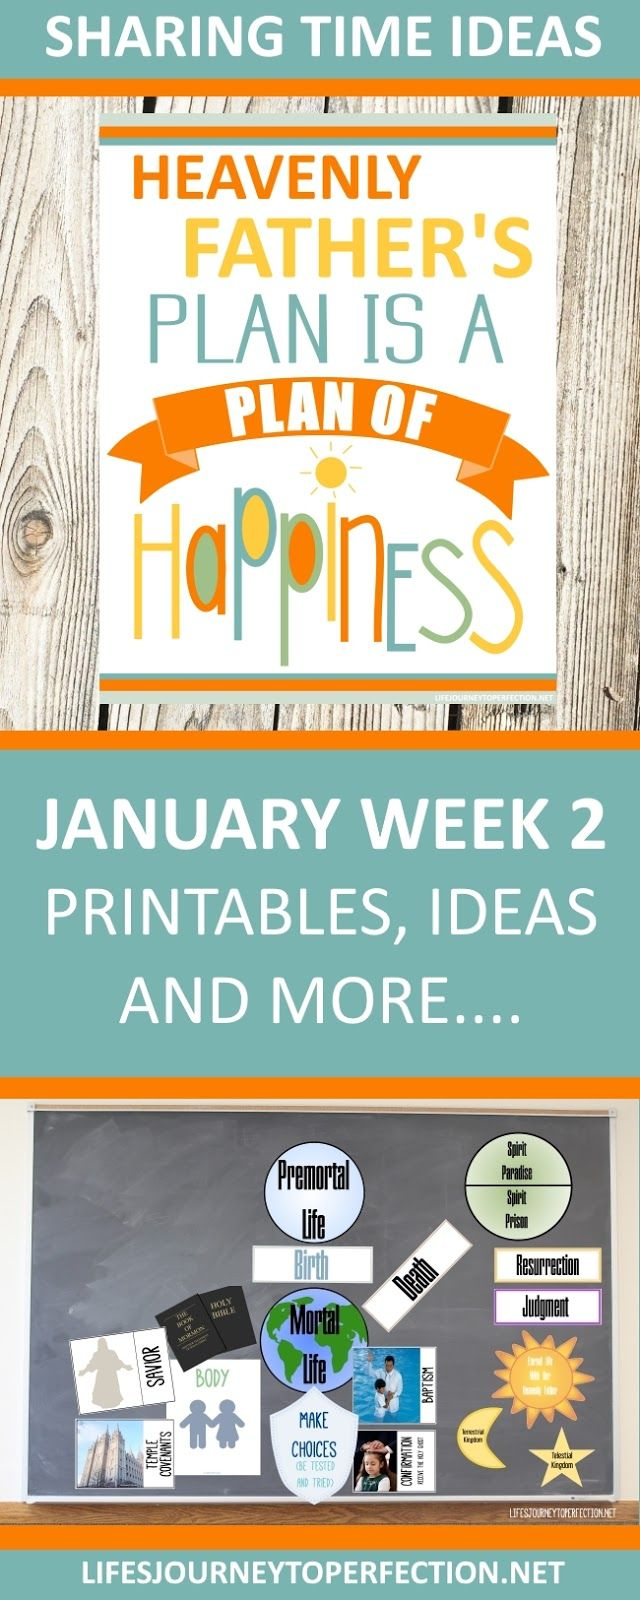 2018 Primary Sharing Time Ideas for January Week 2: Heavenly Father's plan is a plan of happiness